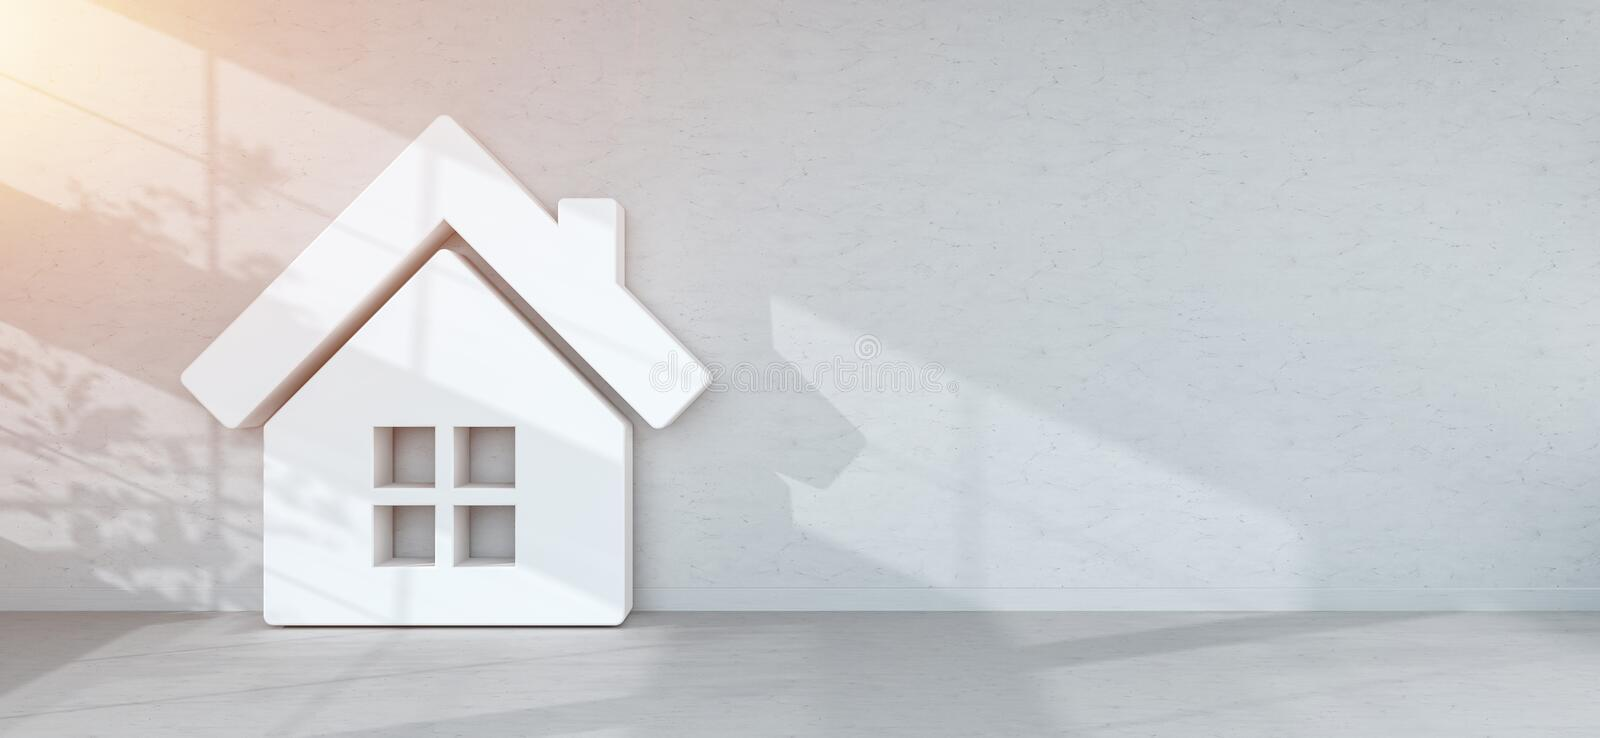 Smarthome icon in interior 3D rendering royalty free illustration